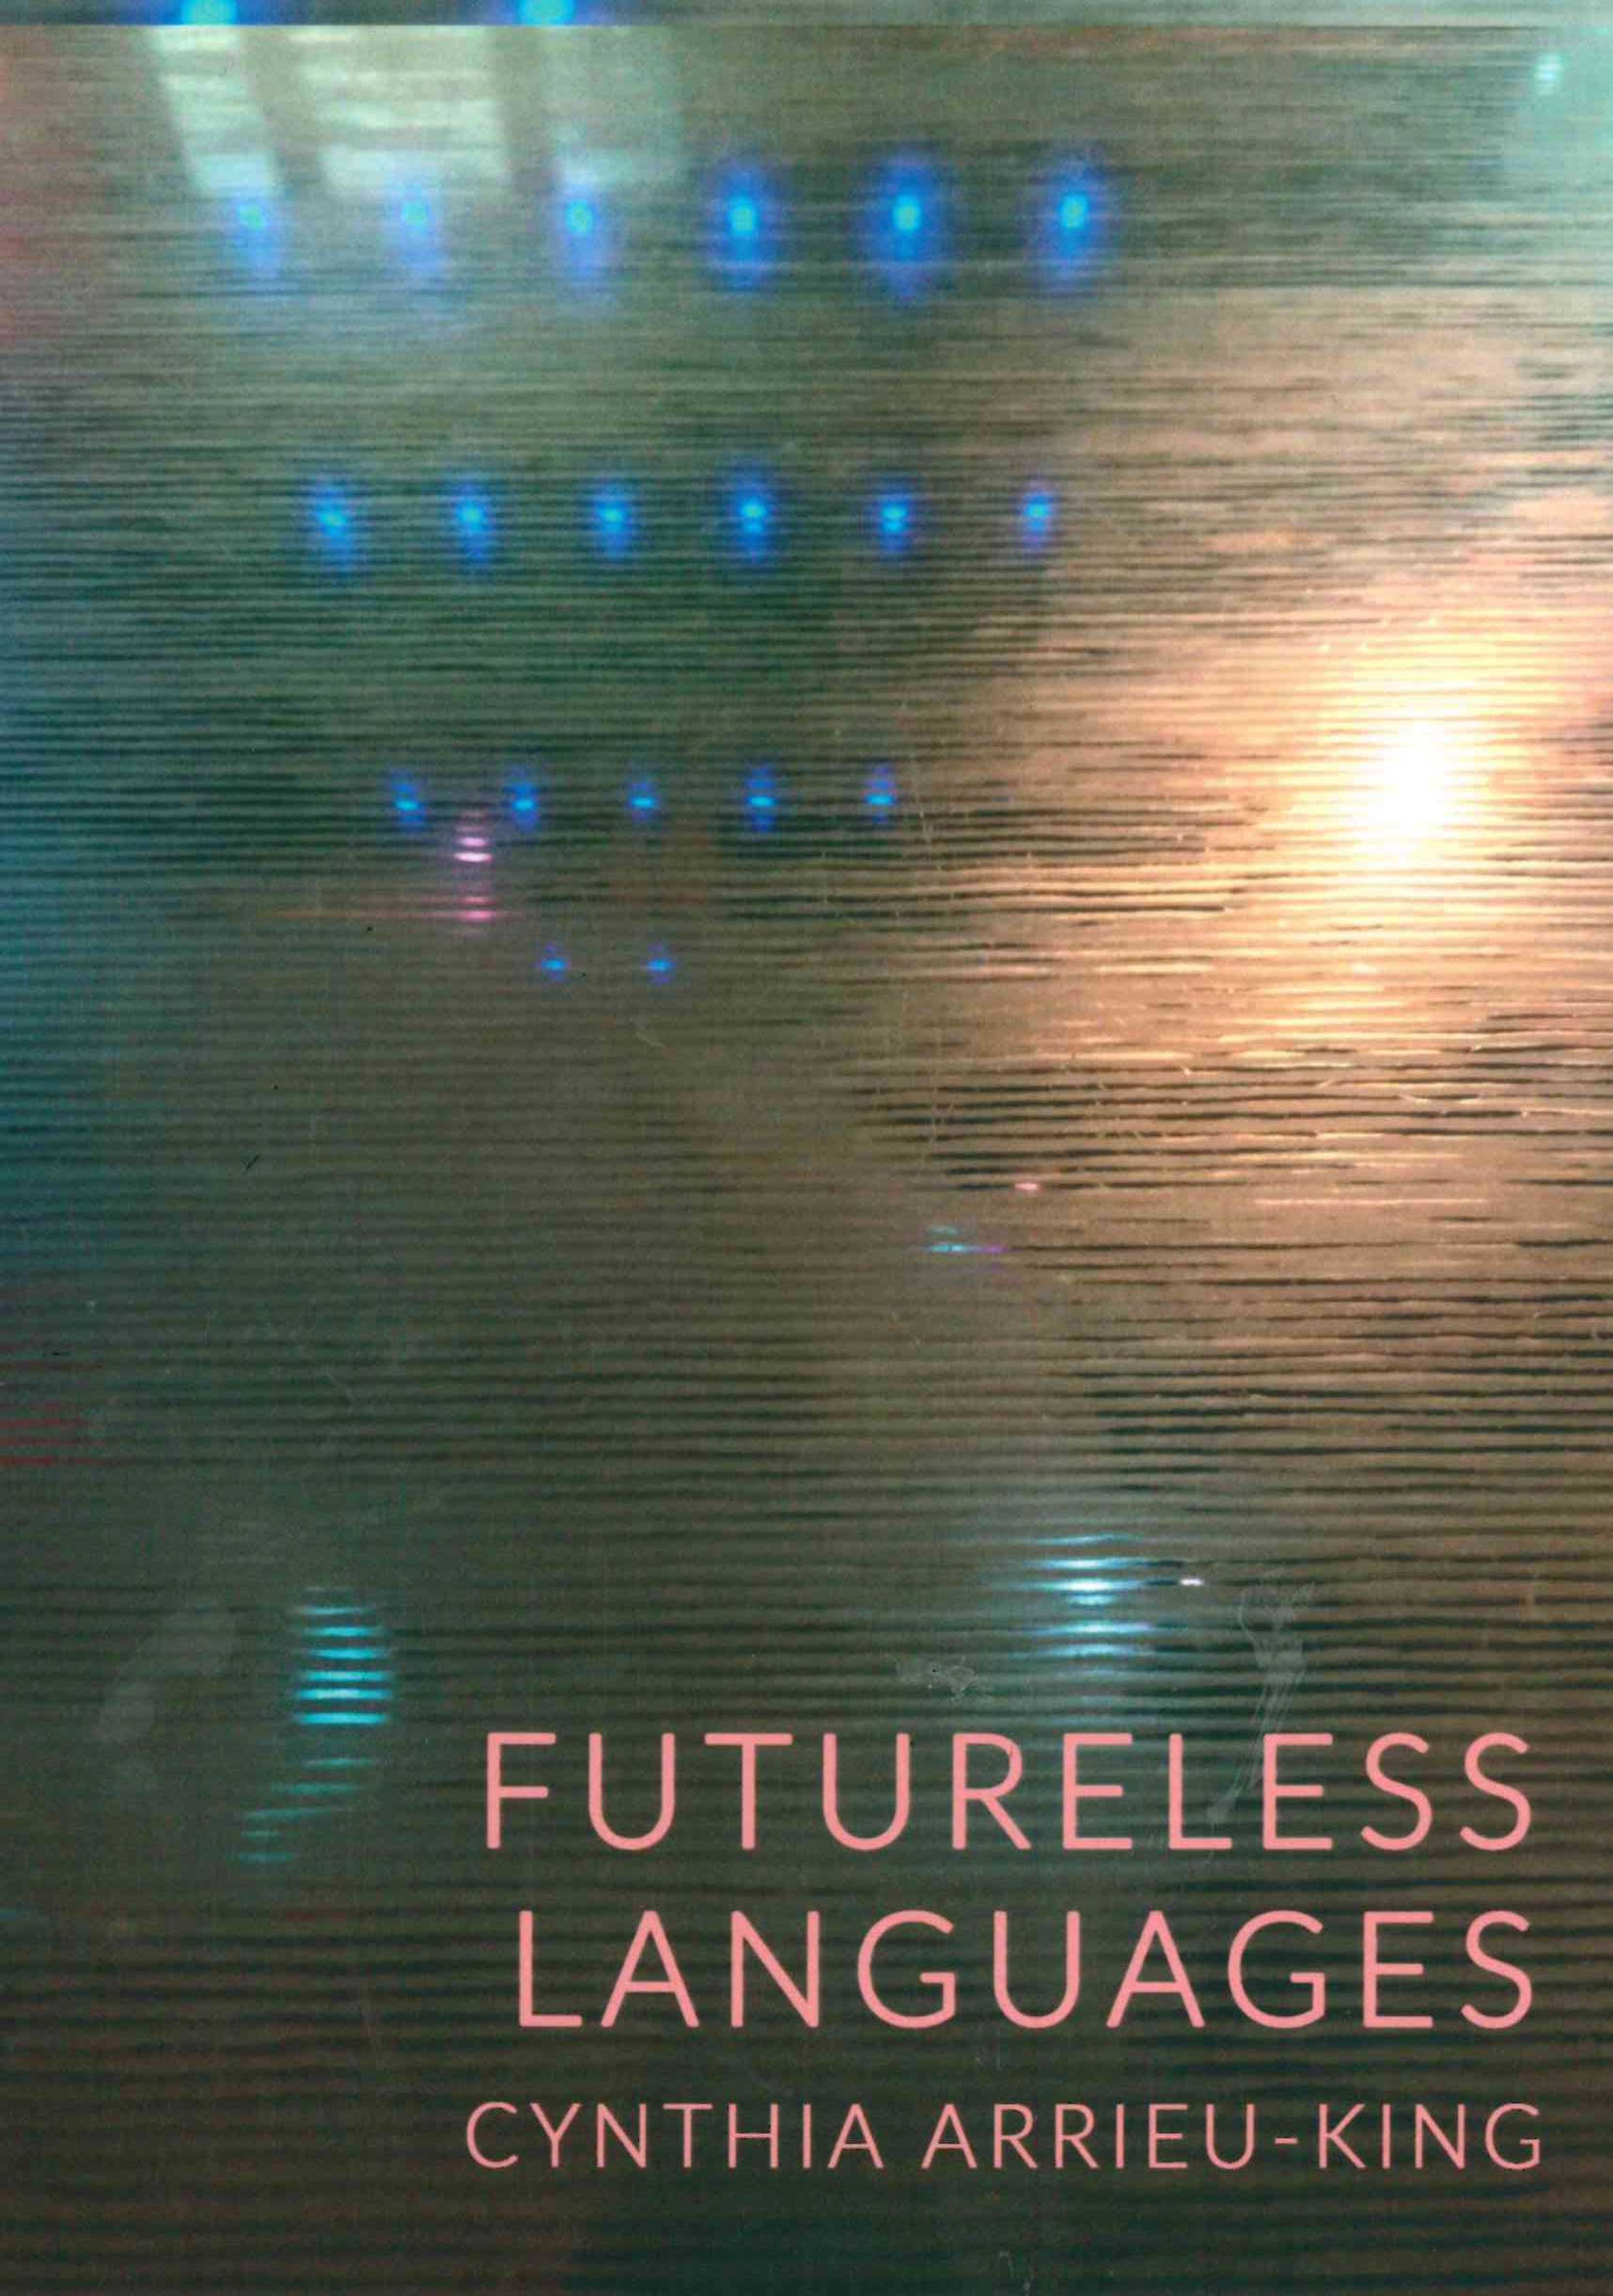 FUTURELESS LANGUAGES